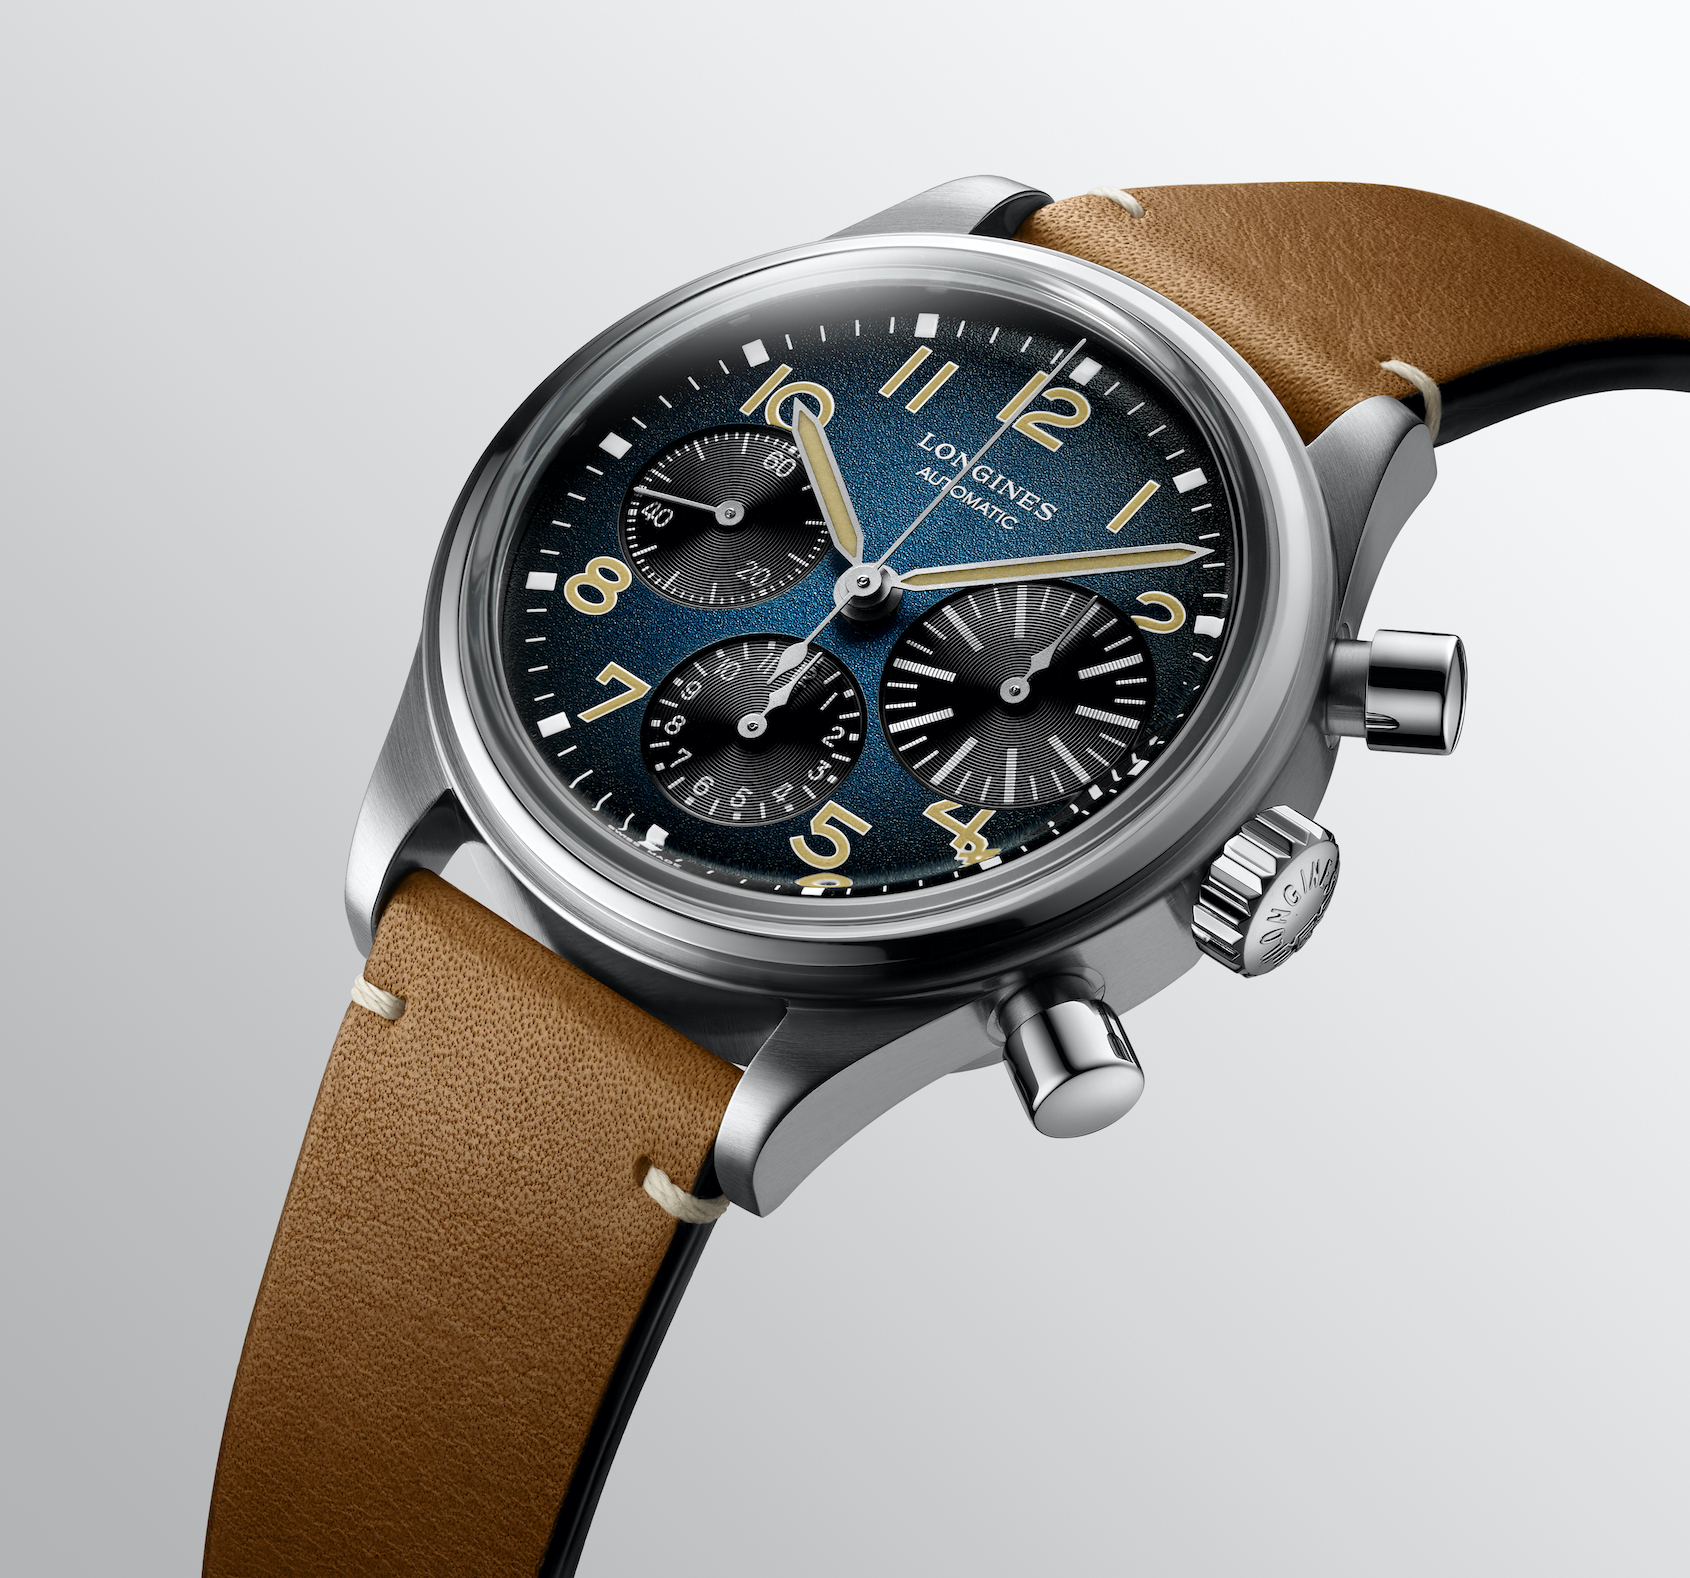 INTRODUCING: The Longines Avigation BigEye Chronograph blends heritage flair with a modern titanium case